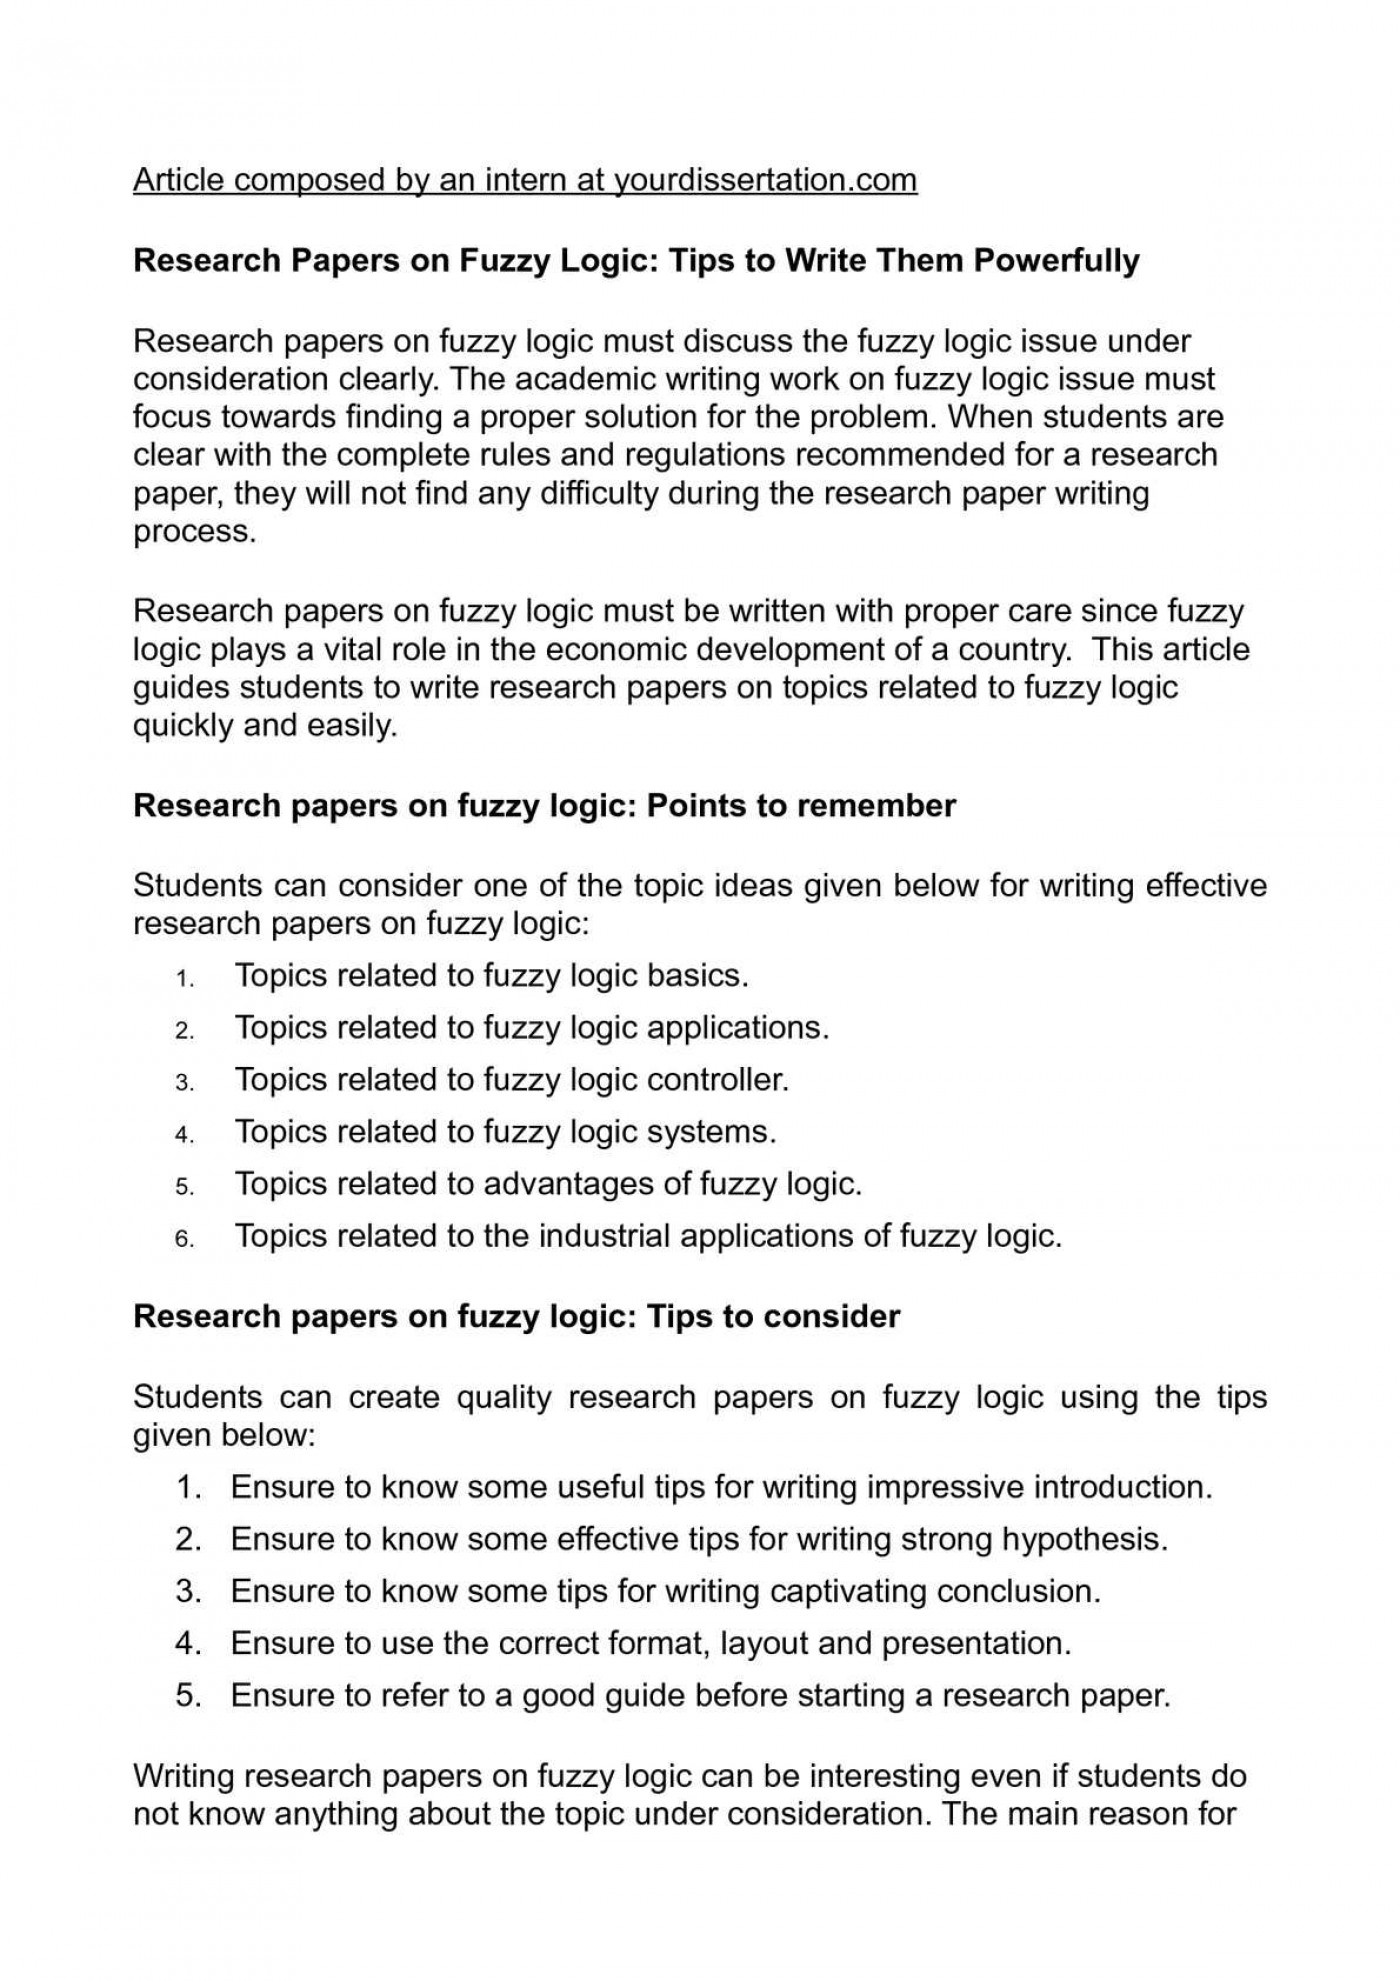 002 P1 Tips For Writing Researchs Unforgettable Research Papers A Paper Pdf In College 1400